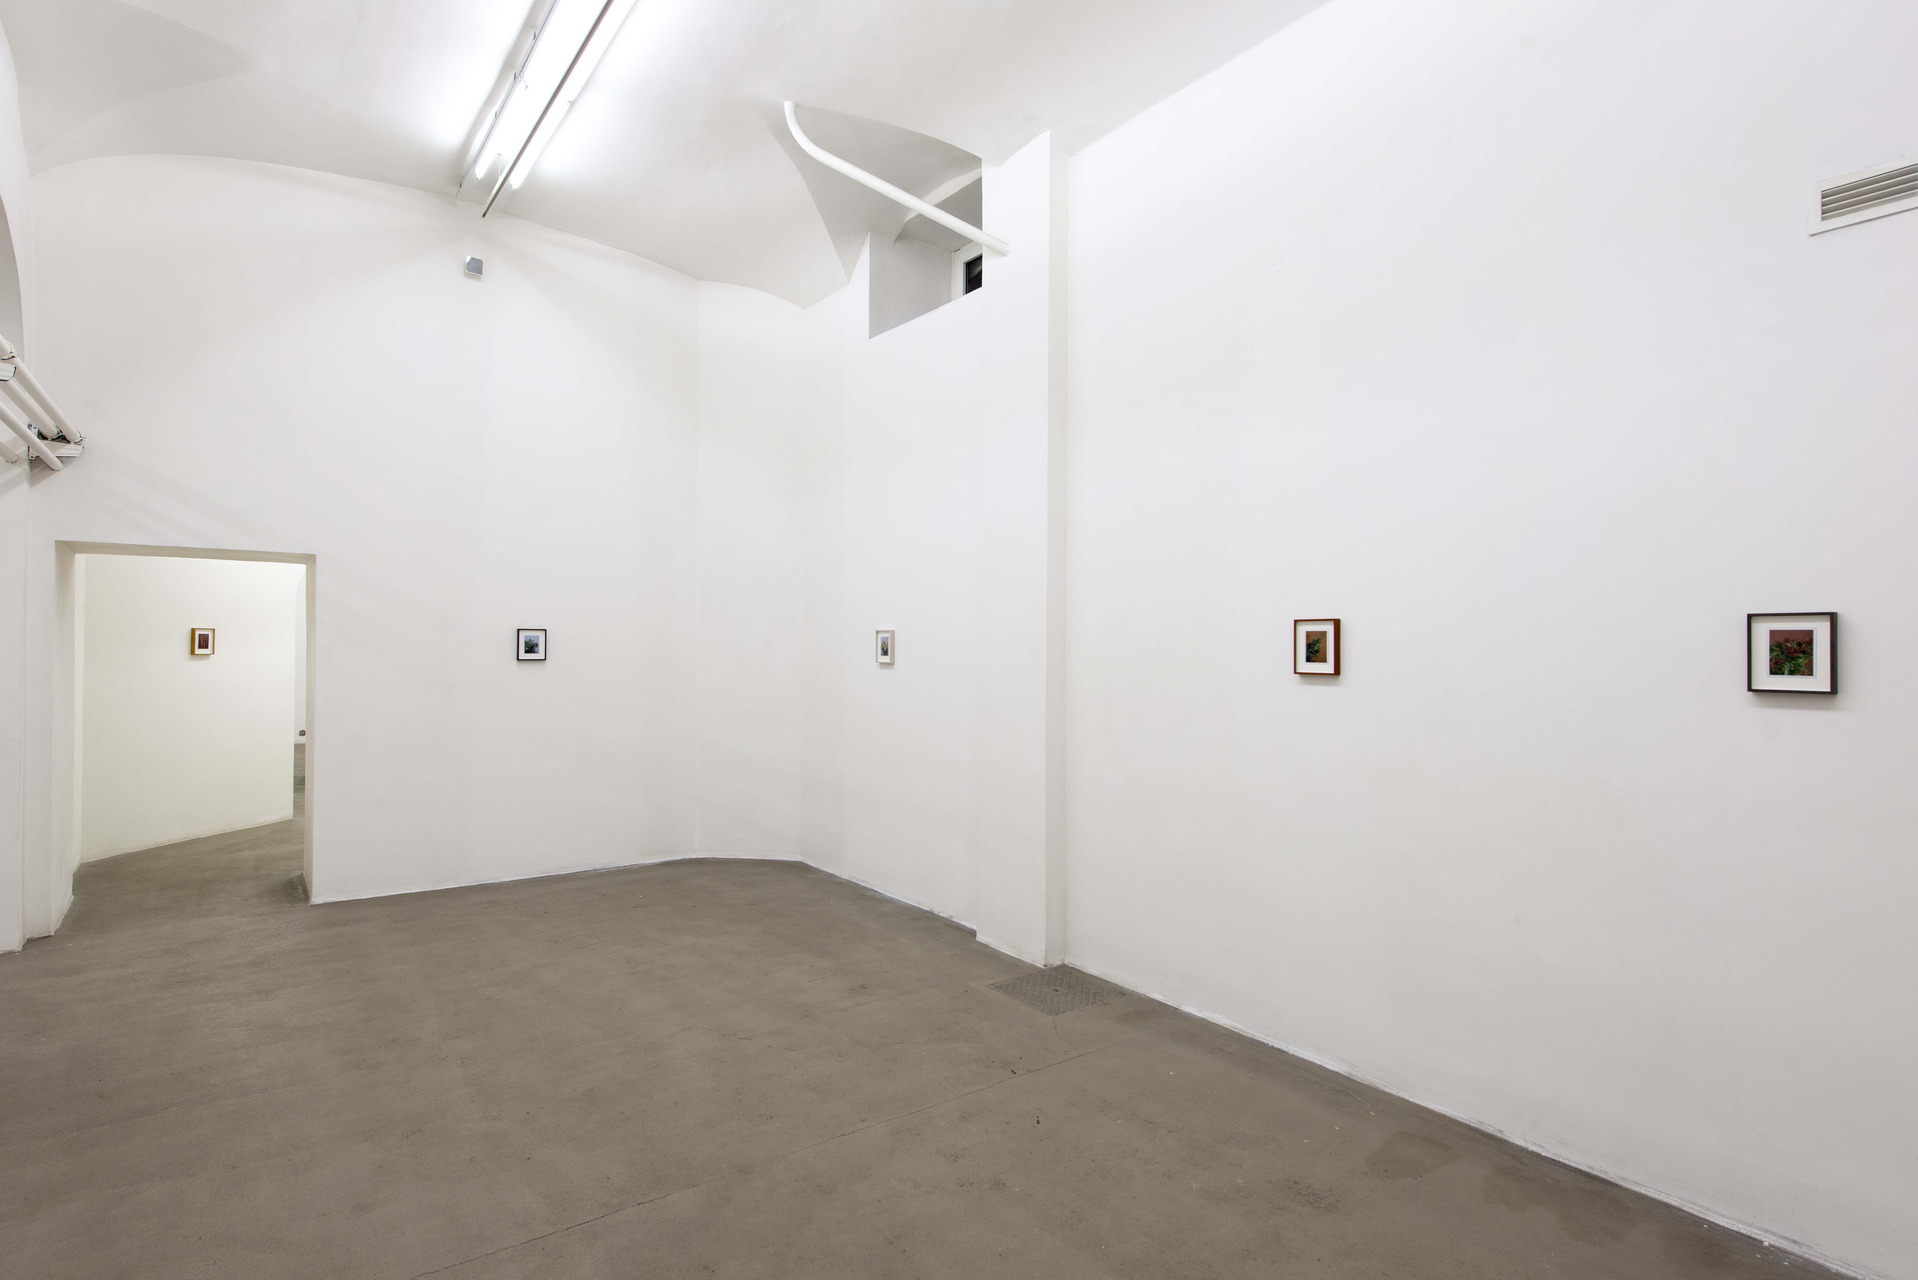 A_FG_Installation view_25